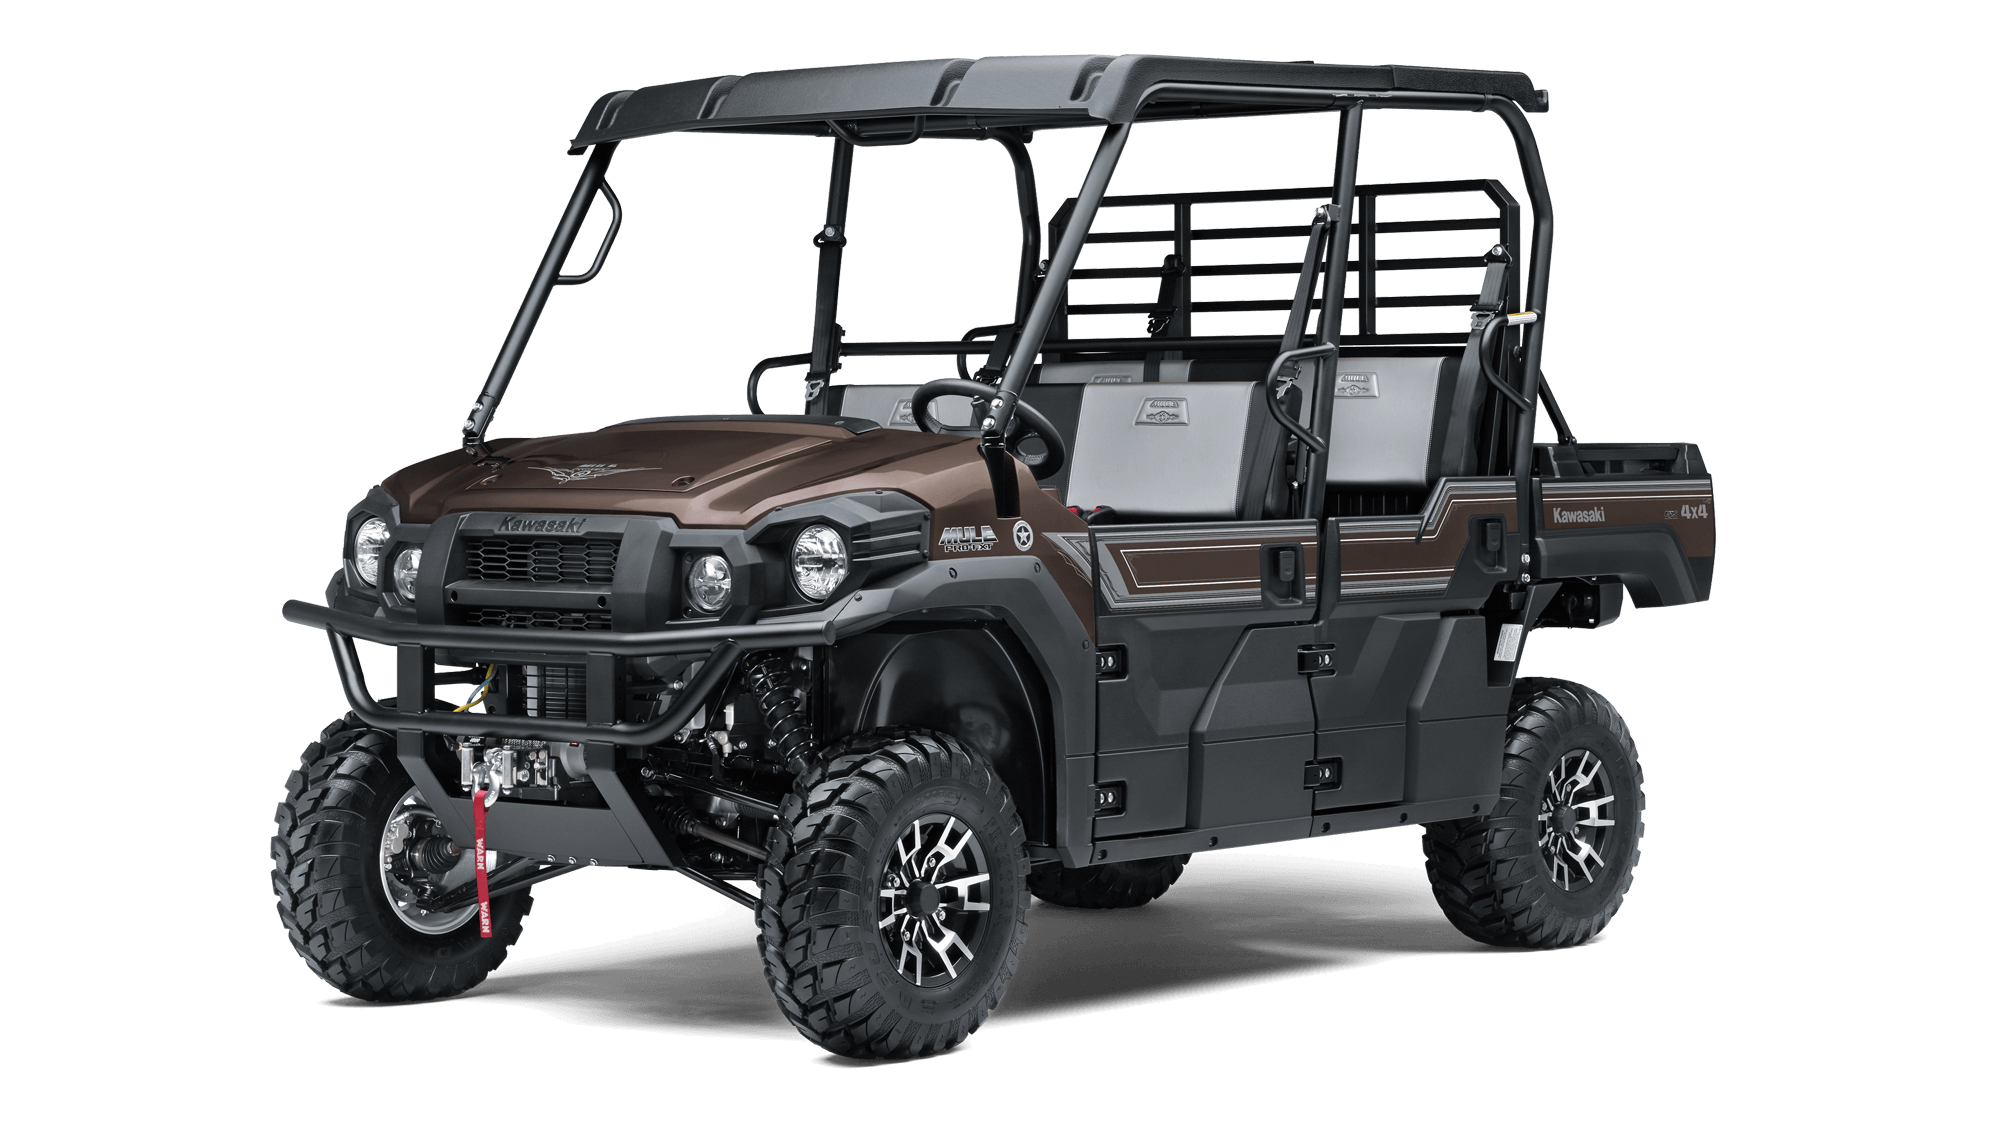 MULE PRO-FXT RANCH EDITION Image